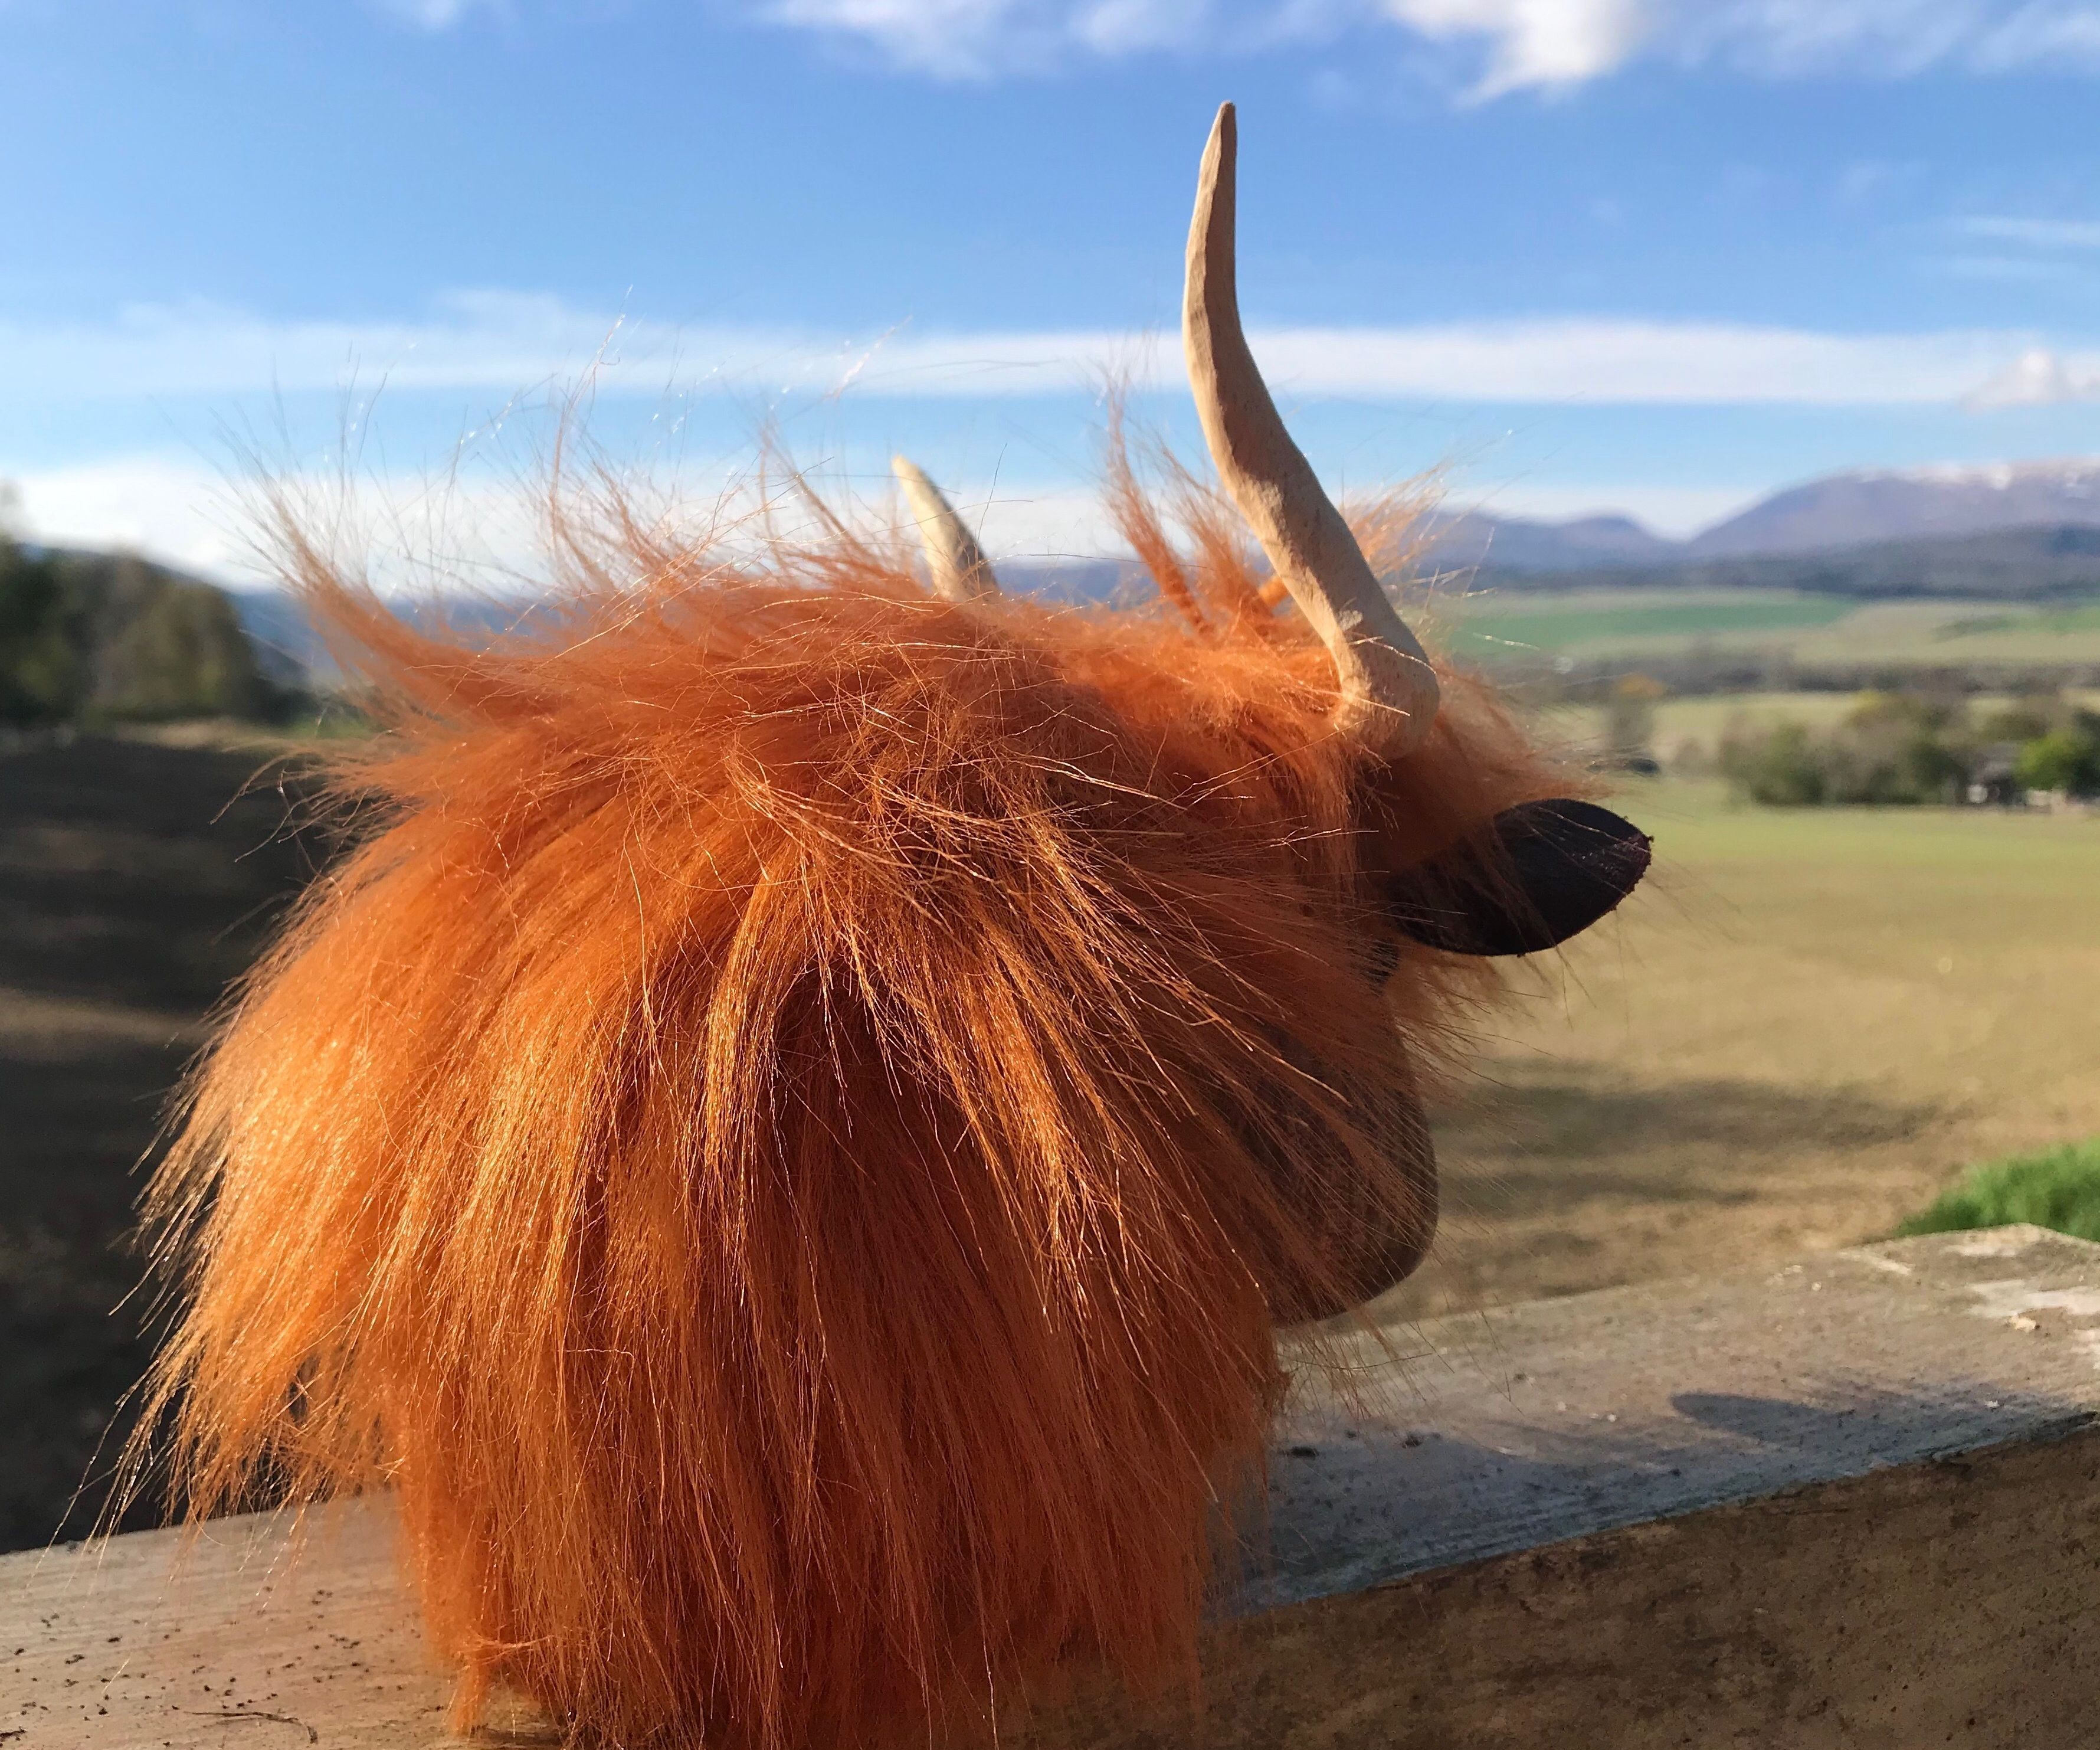 Highland Cow From Scraps on a Woodlathe